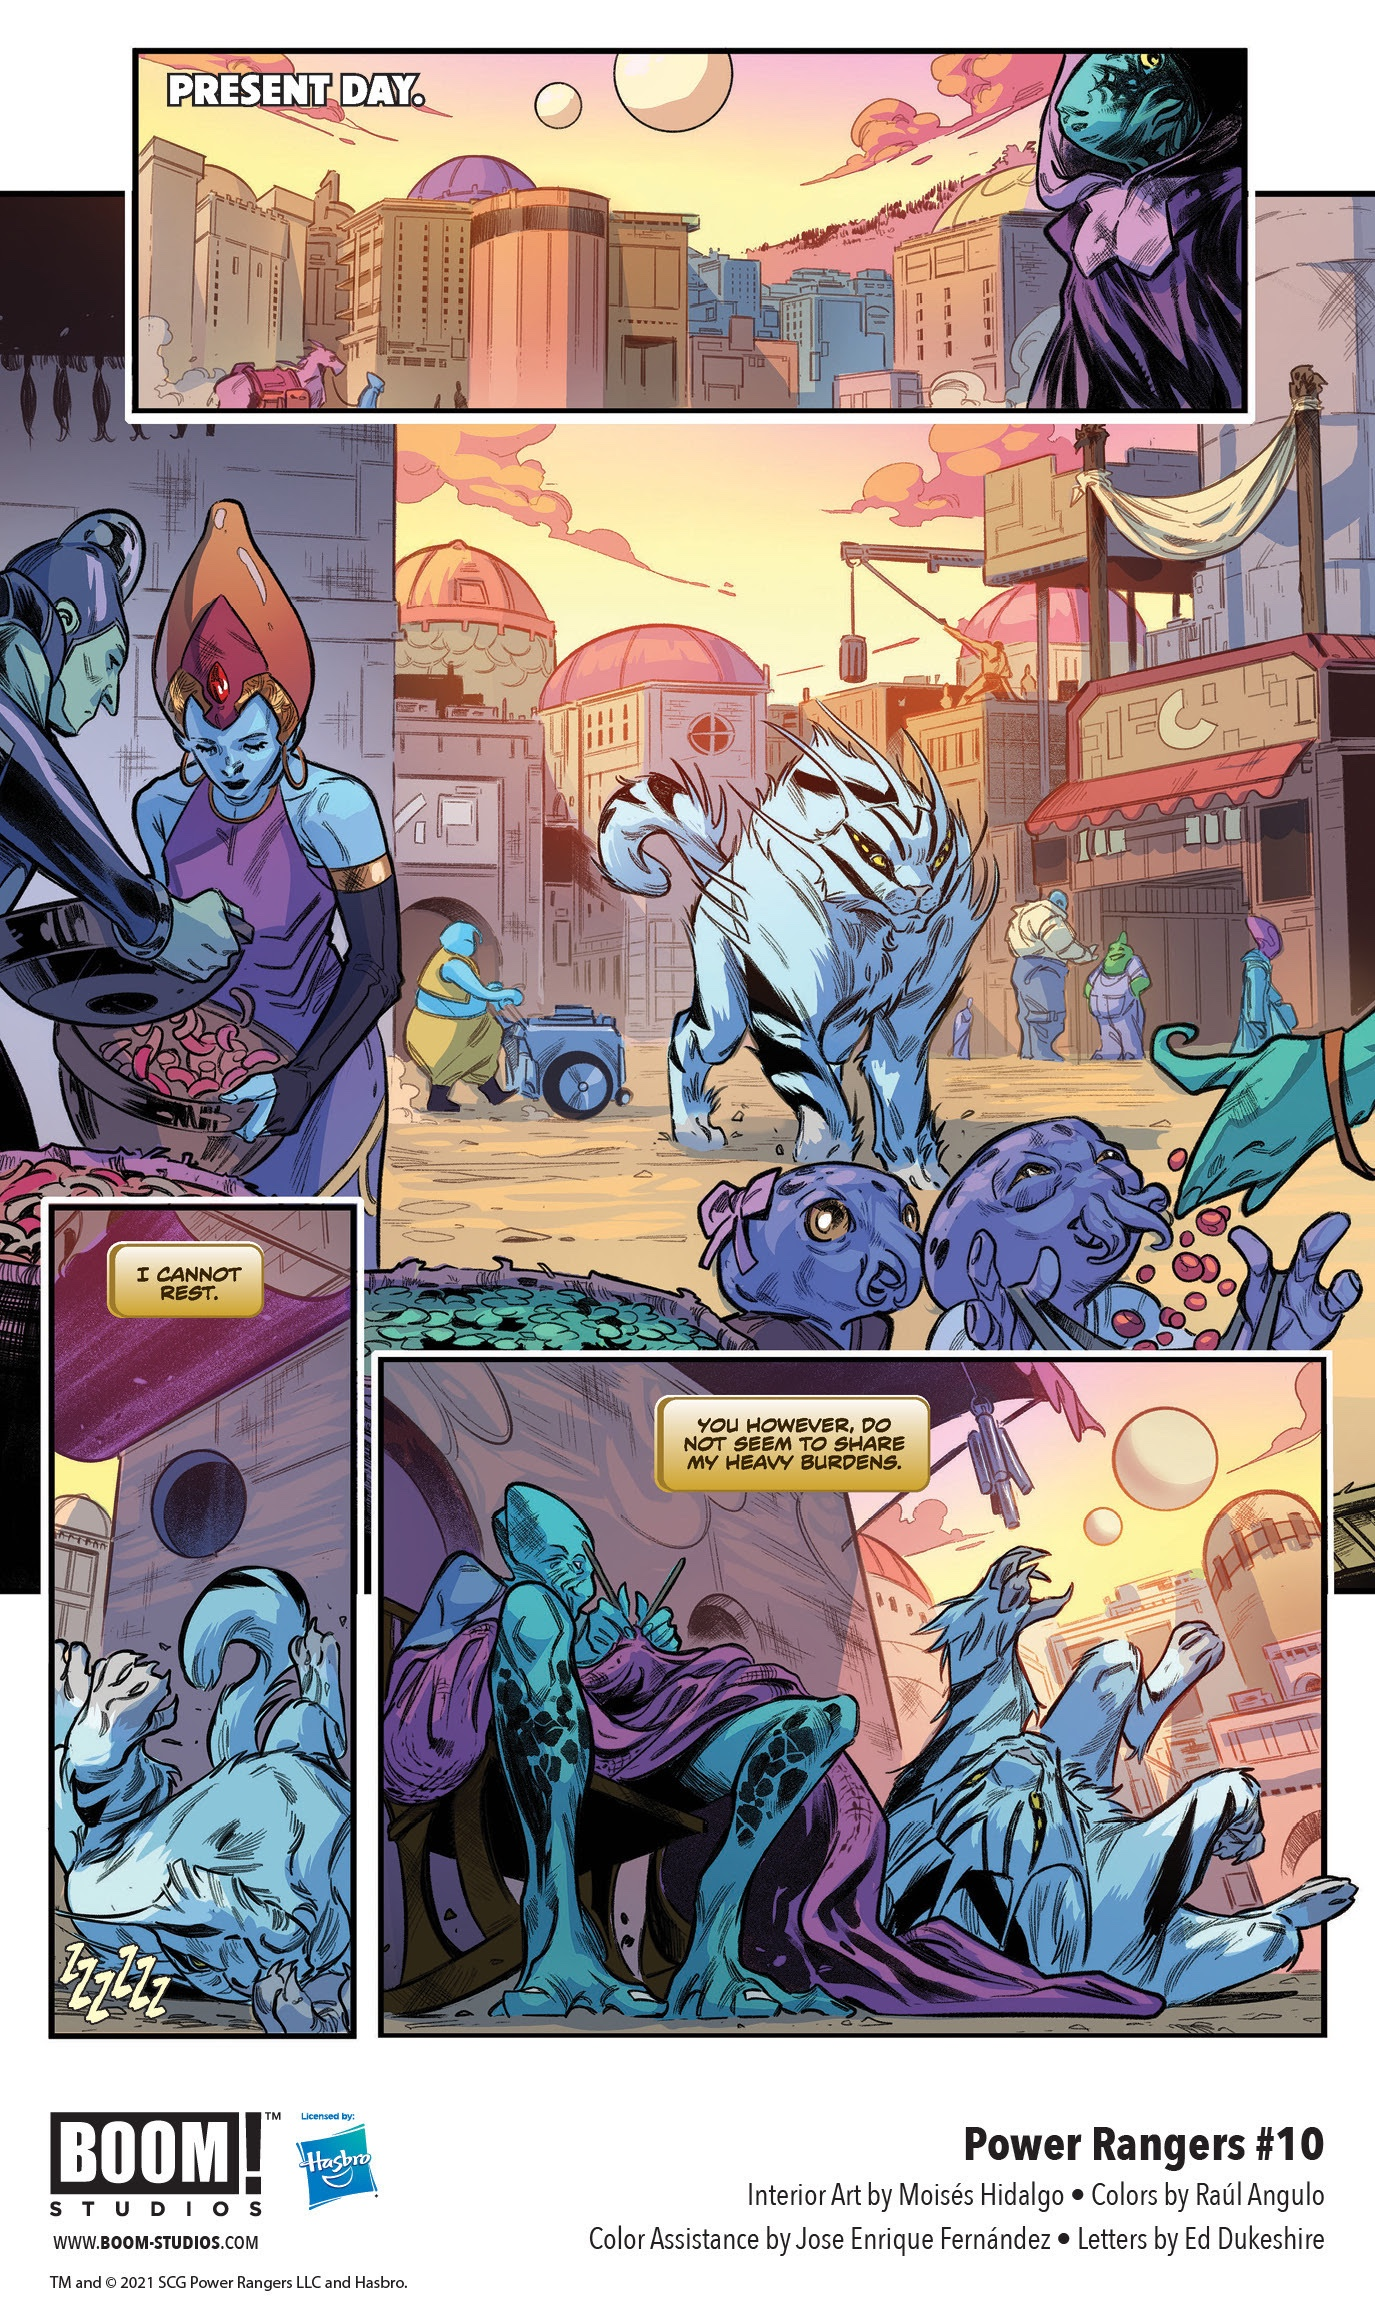 , FIRST LOOK: POWER RANGERS #10 from BOOM! Studios, The Indie Comix Dispatch